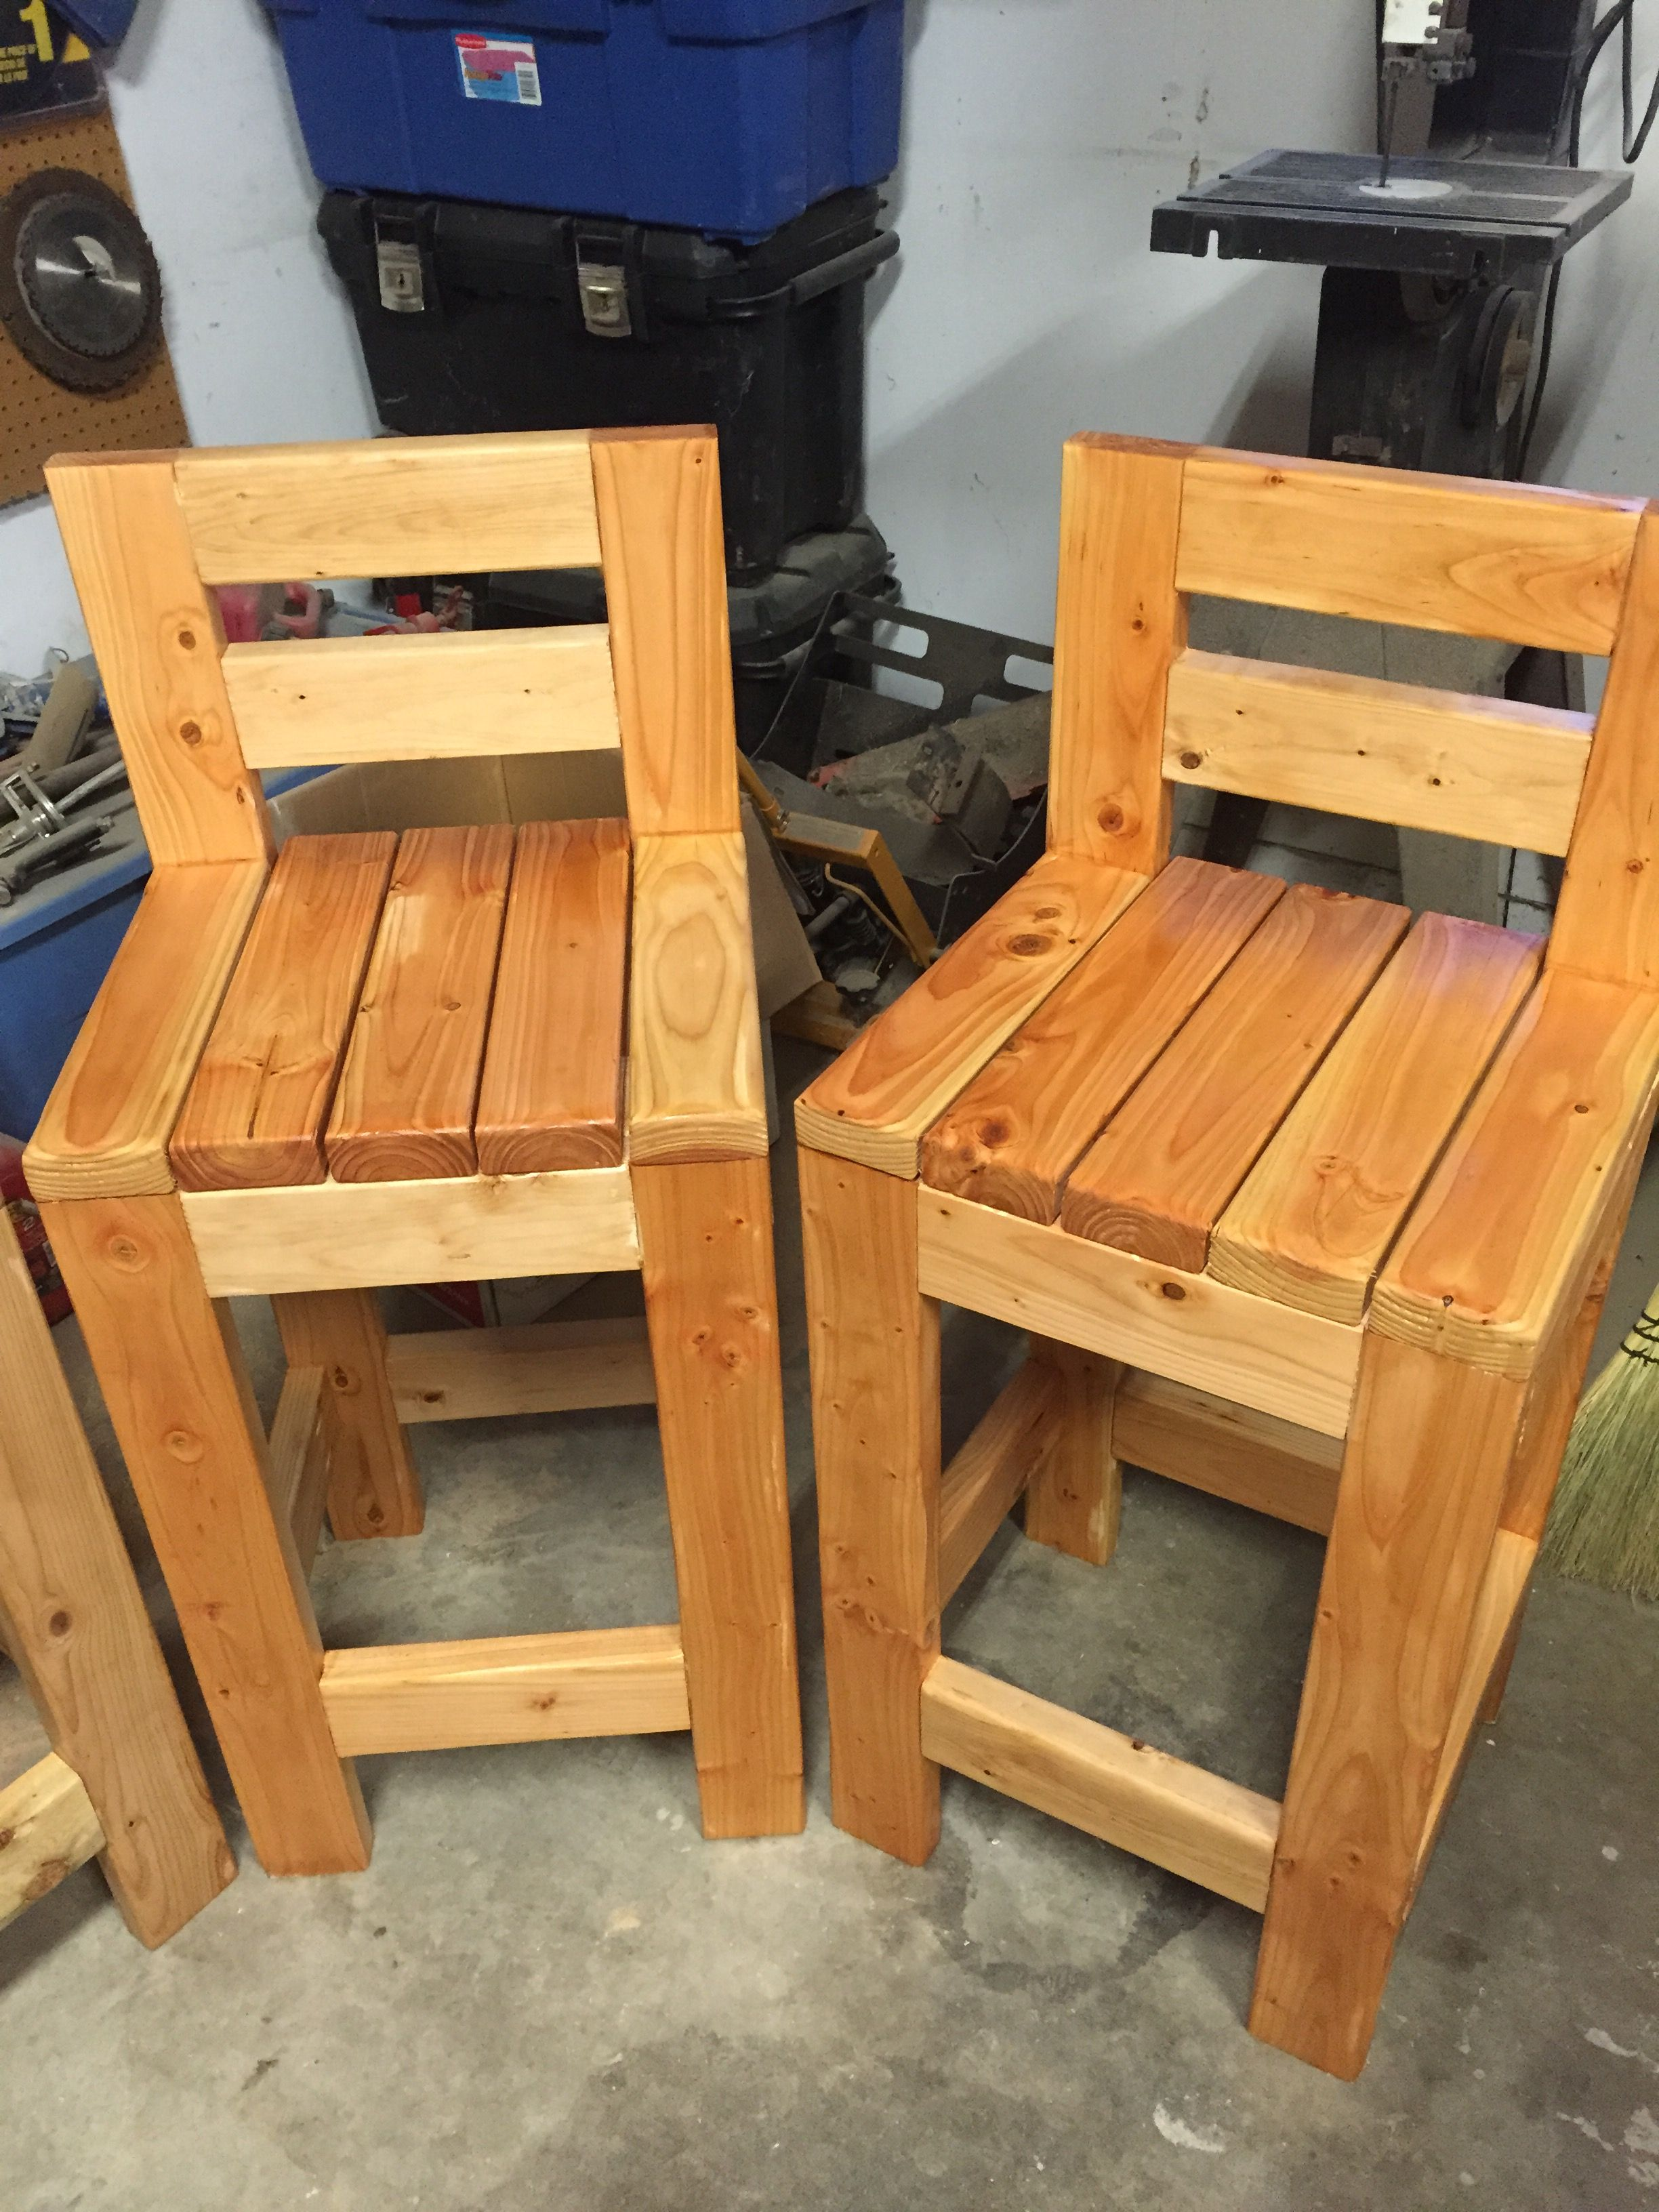 8 Outdoor Bar Ideas On A Budget Furniture Projects 2x4